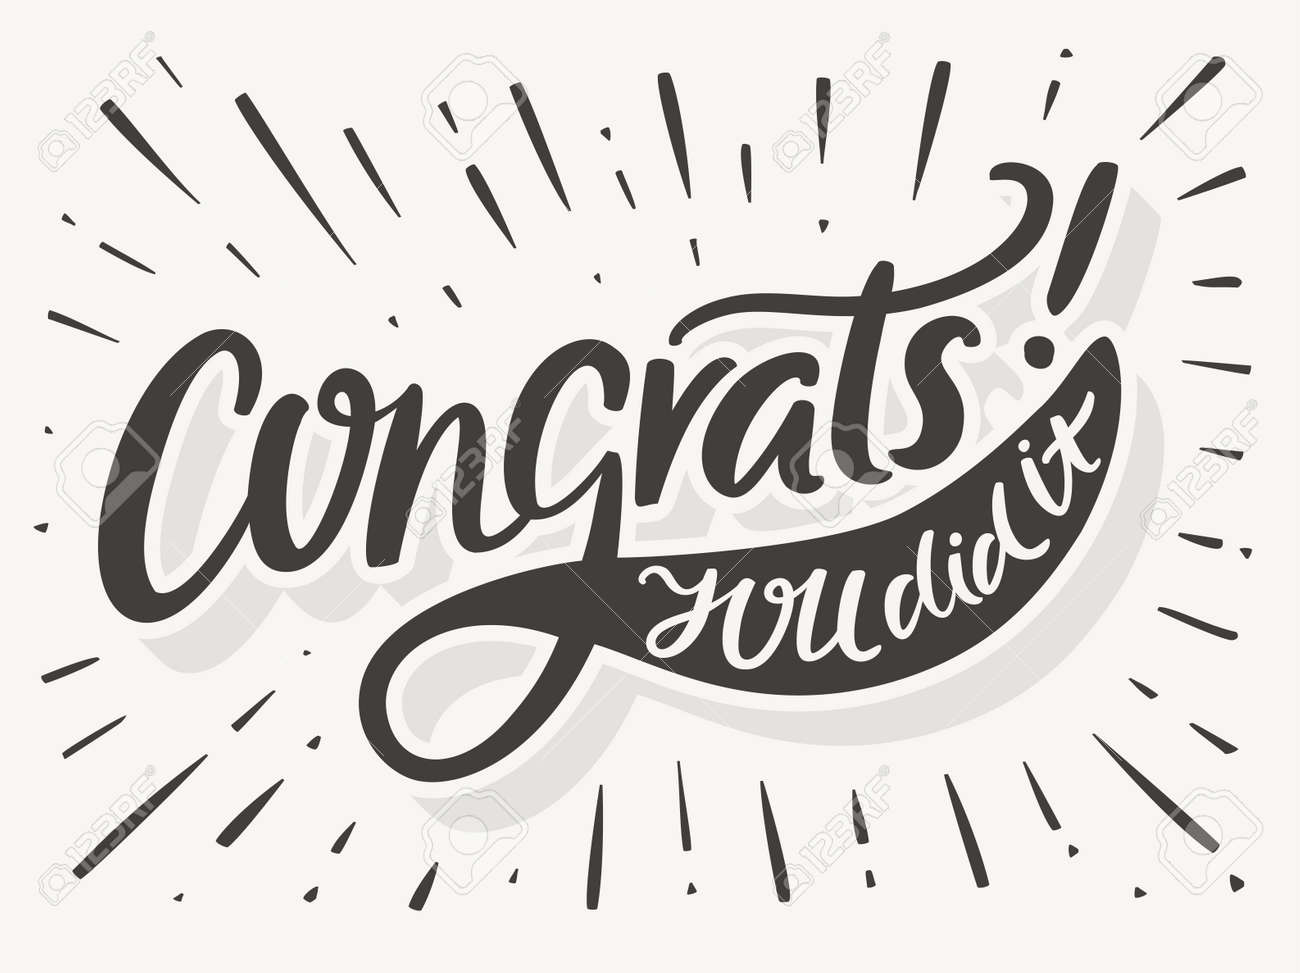 49668151-Congrats-You-Did-It-Congratulations-card-Hand-lettering-Vector--Stock-Photo.jpg